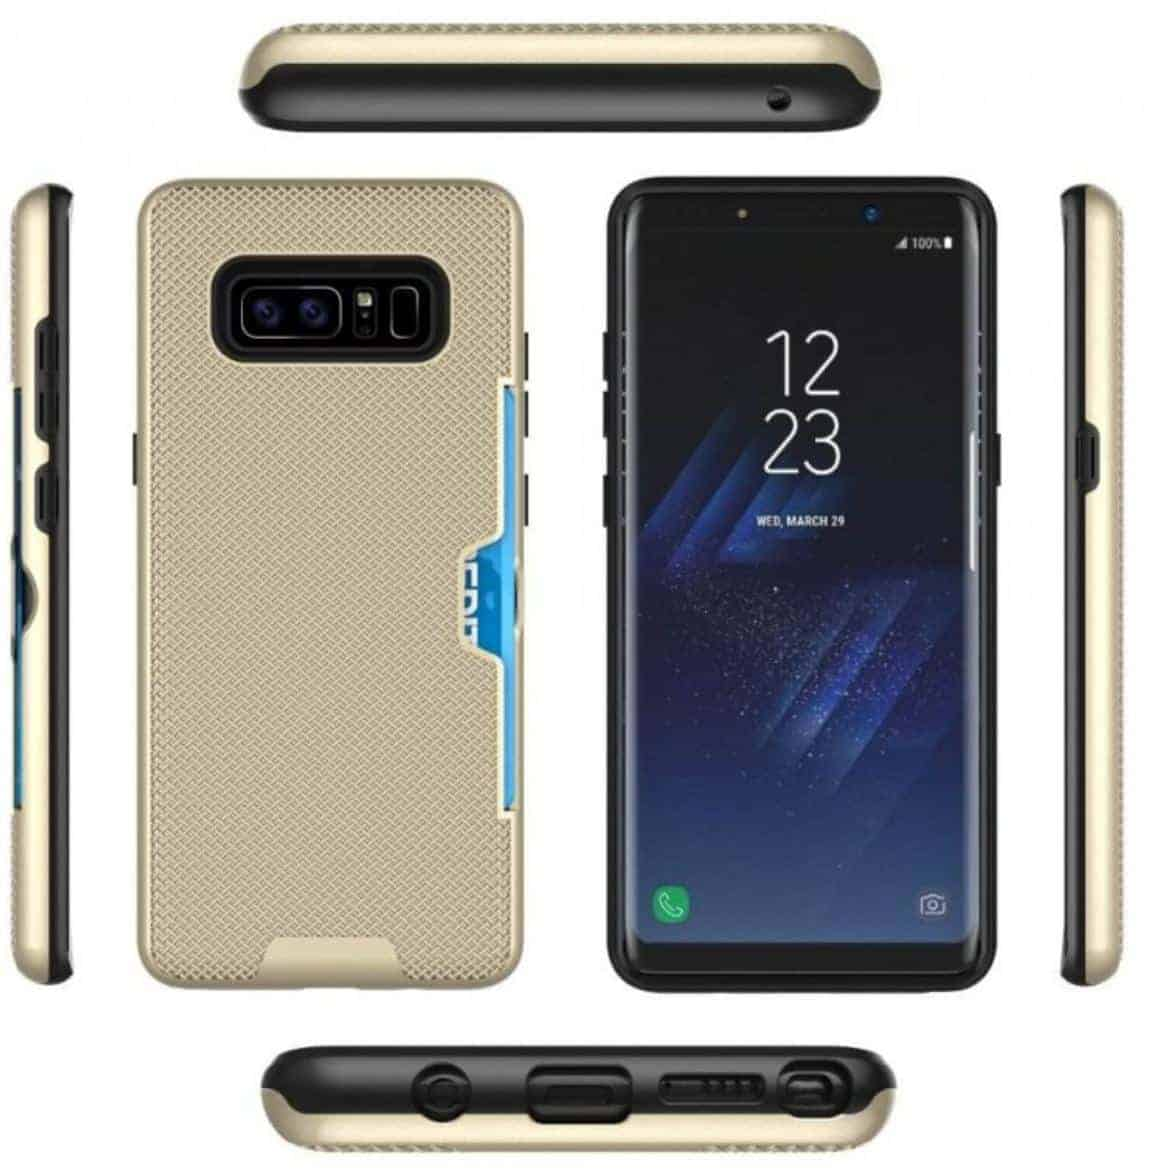 Galaxy Note 8 Render Case Leak Zyadatef 2